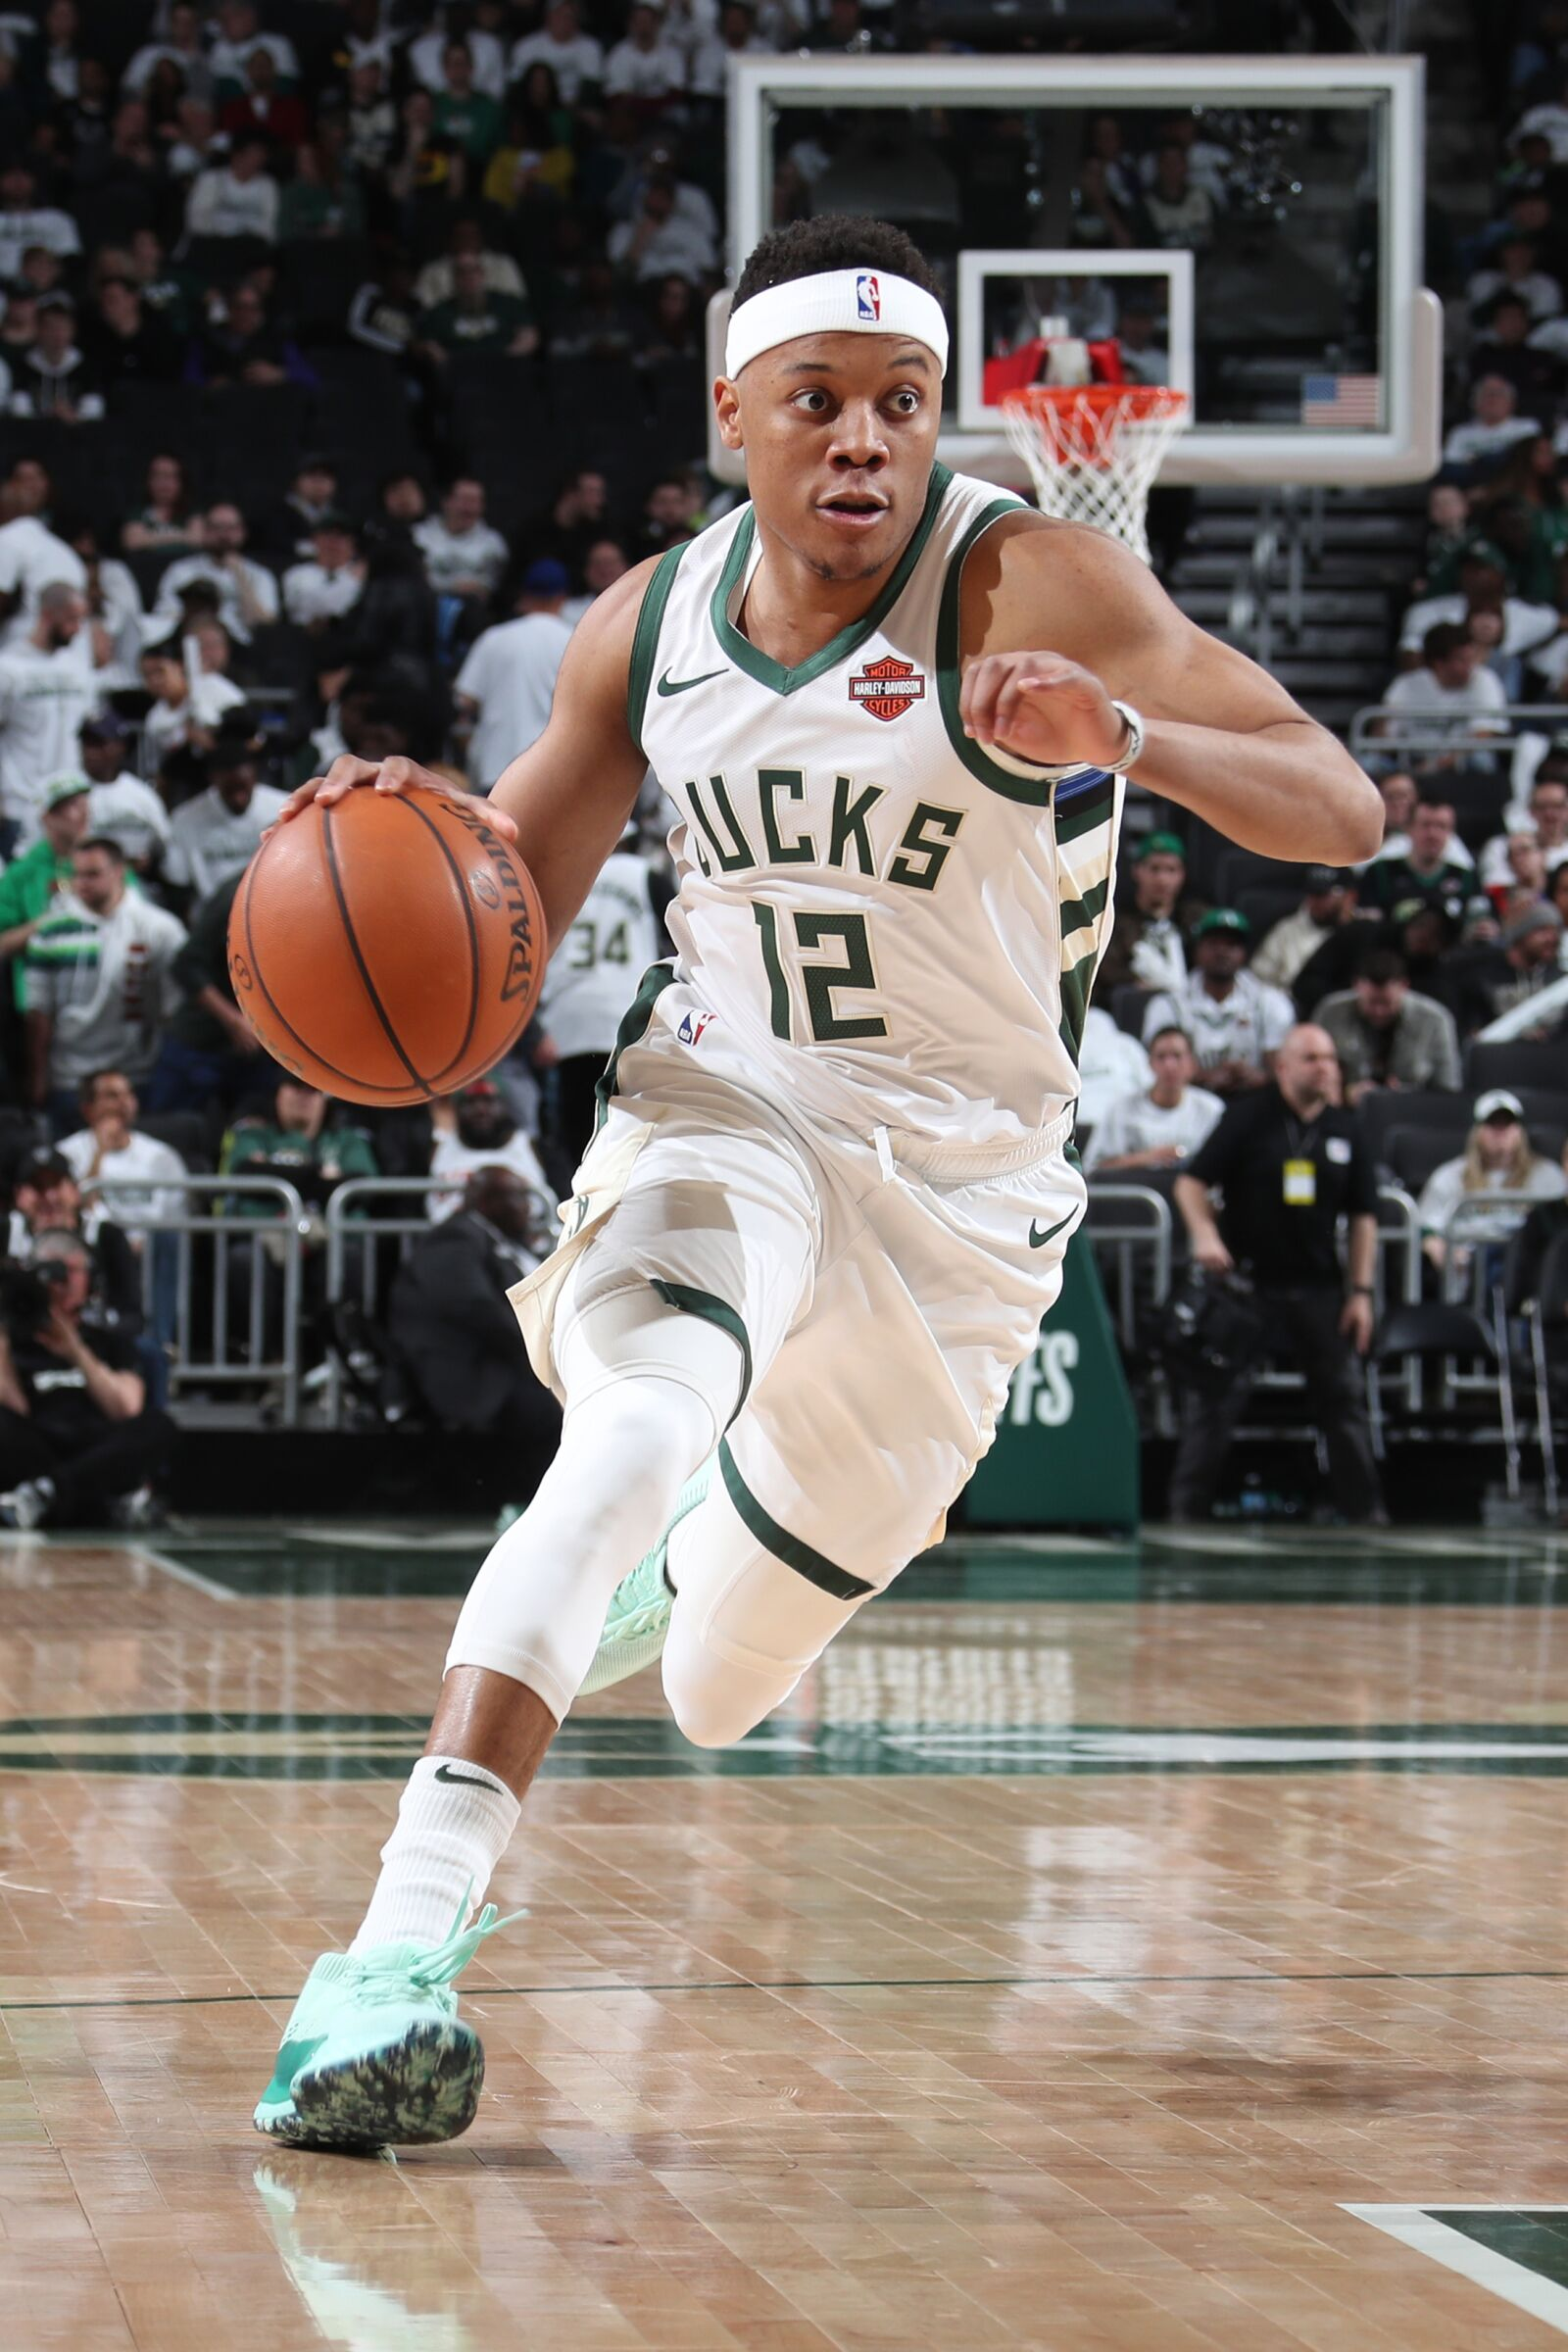 e338e54ef1b Tim Frazier the newest Detroit Pistons guard is ready to win